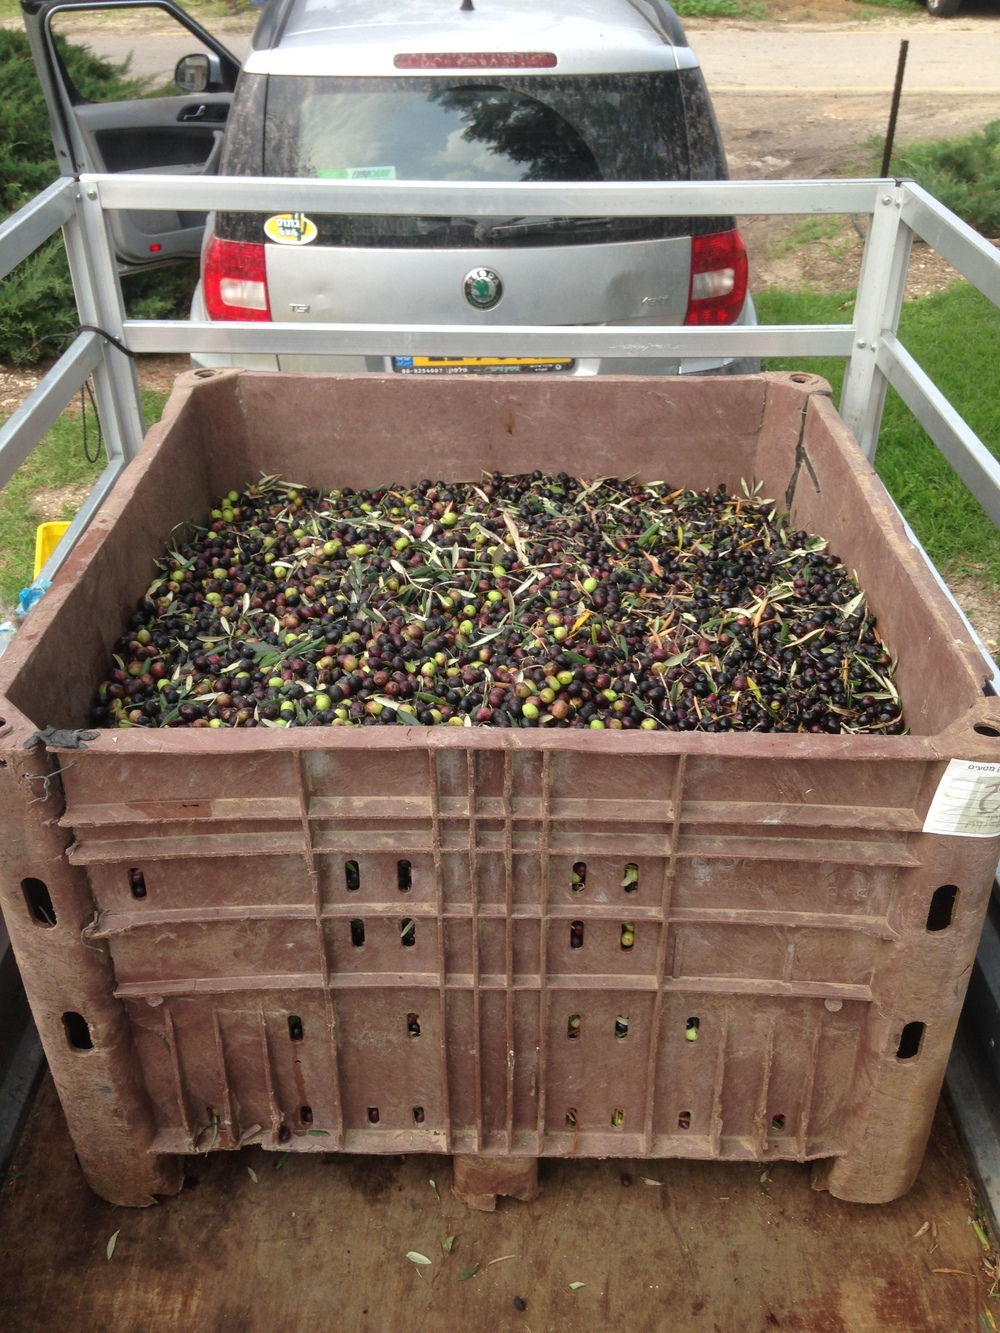 Olives loaded up ready to be taken to the olive press.